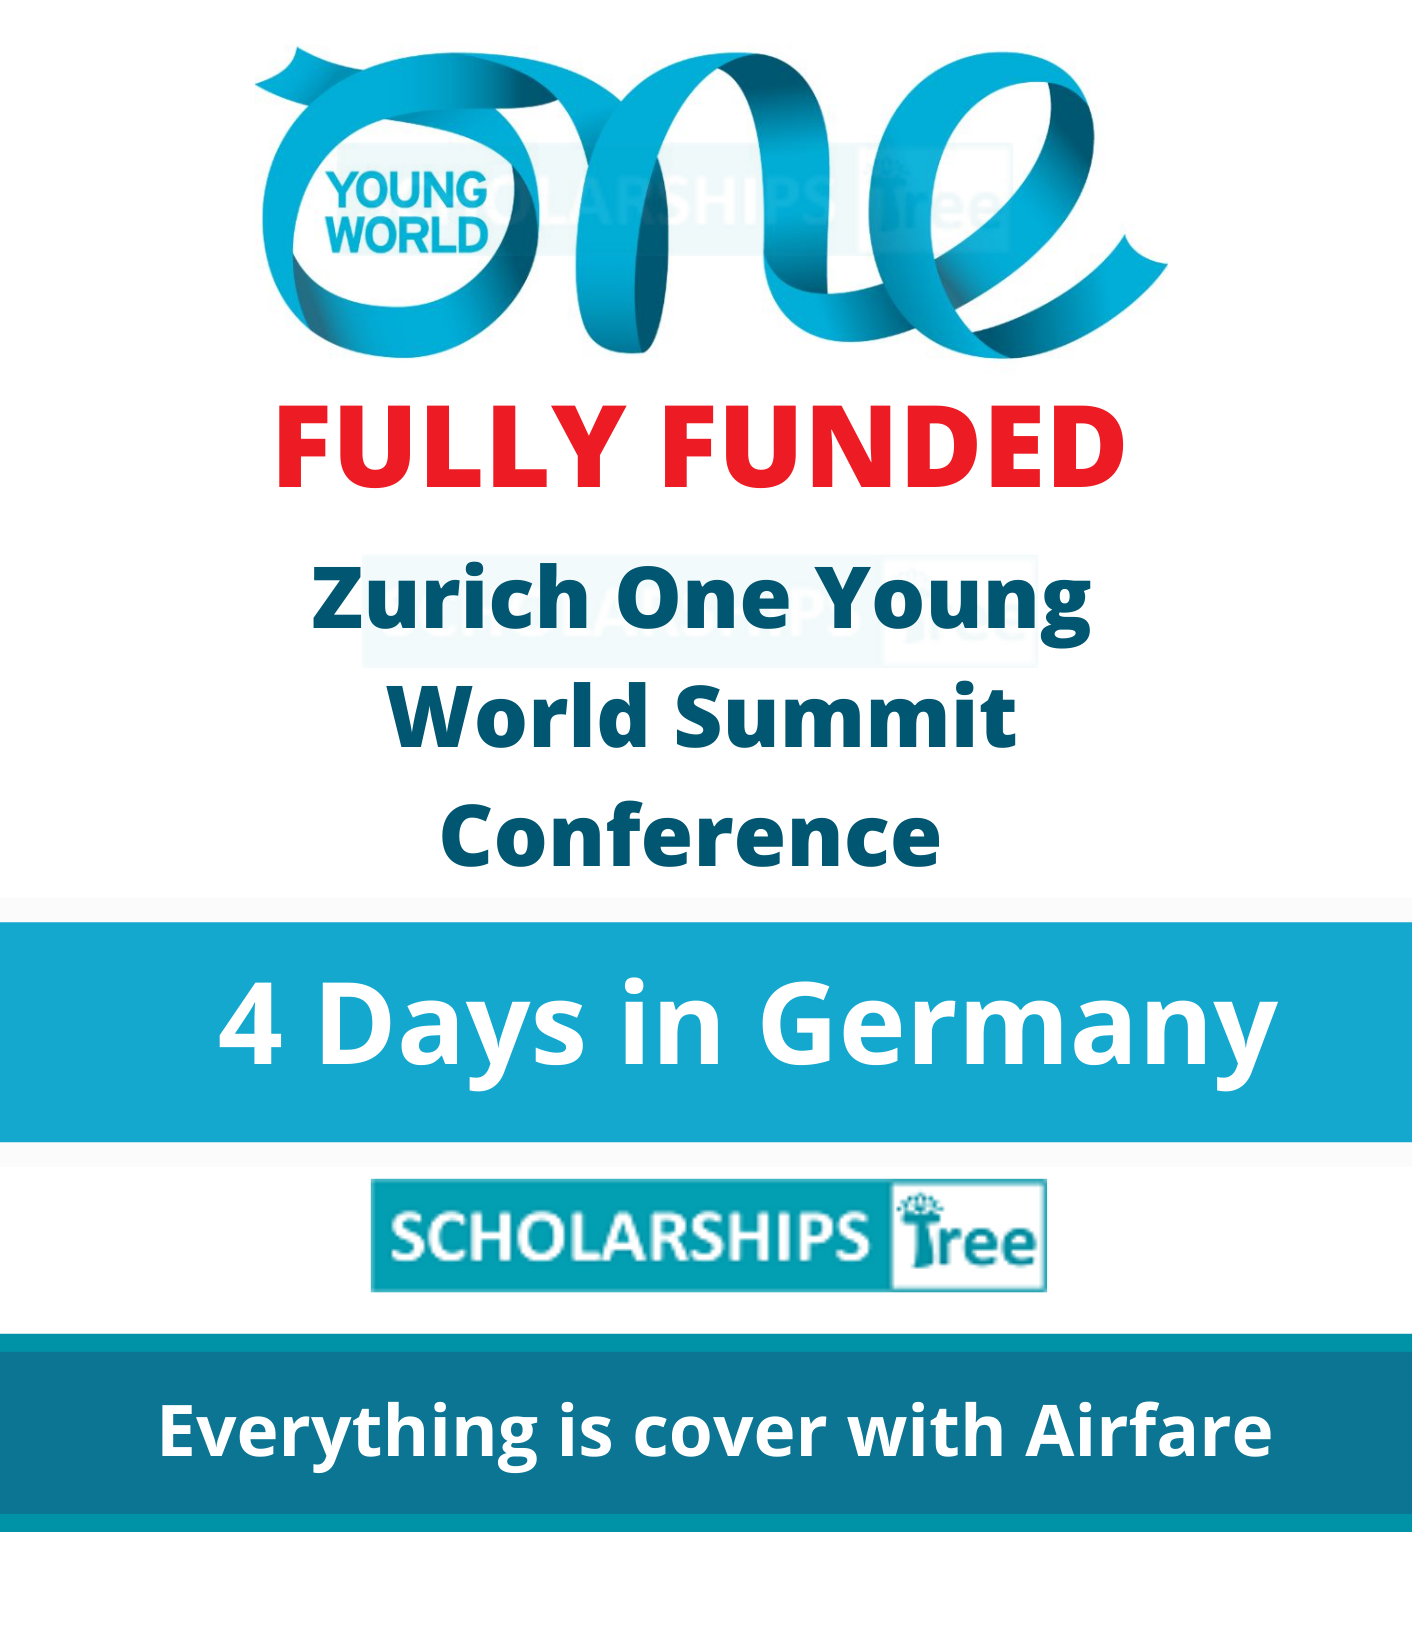 Zurich One young World Summit Scholarship 2021 - Fully Funded